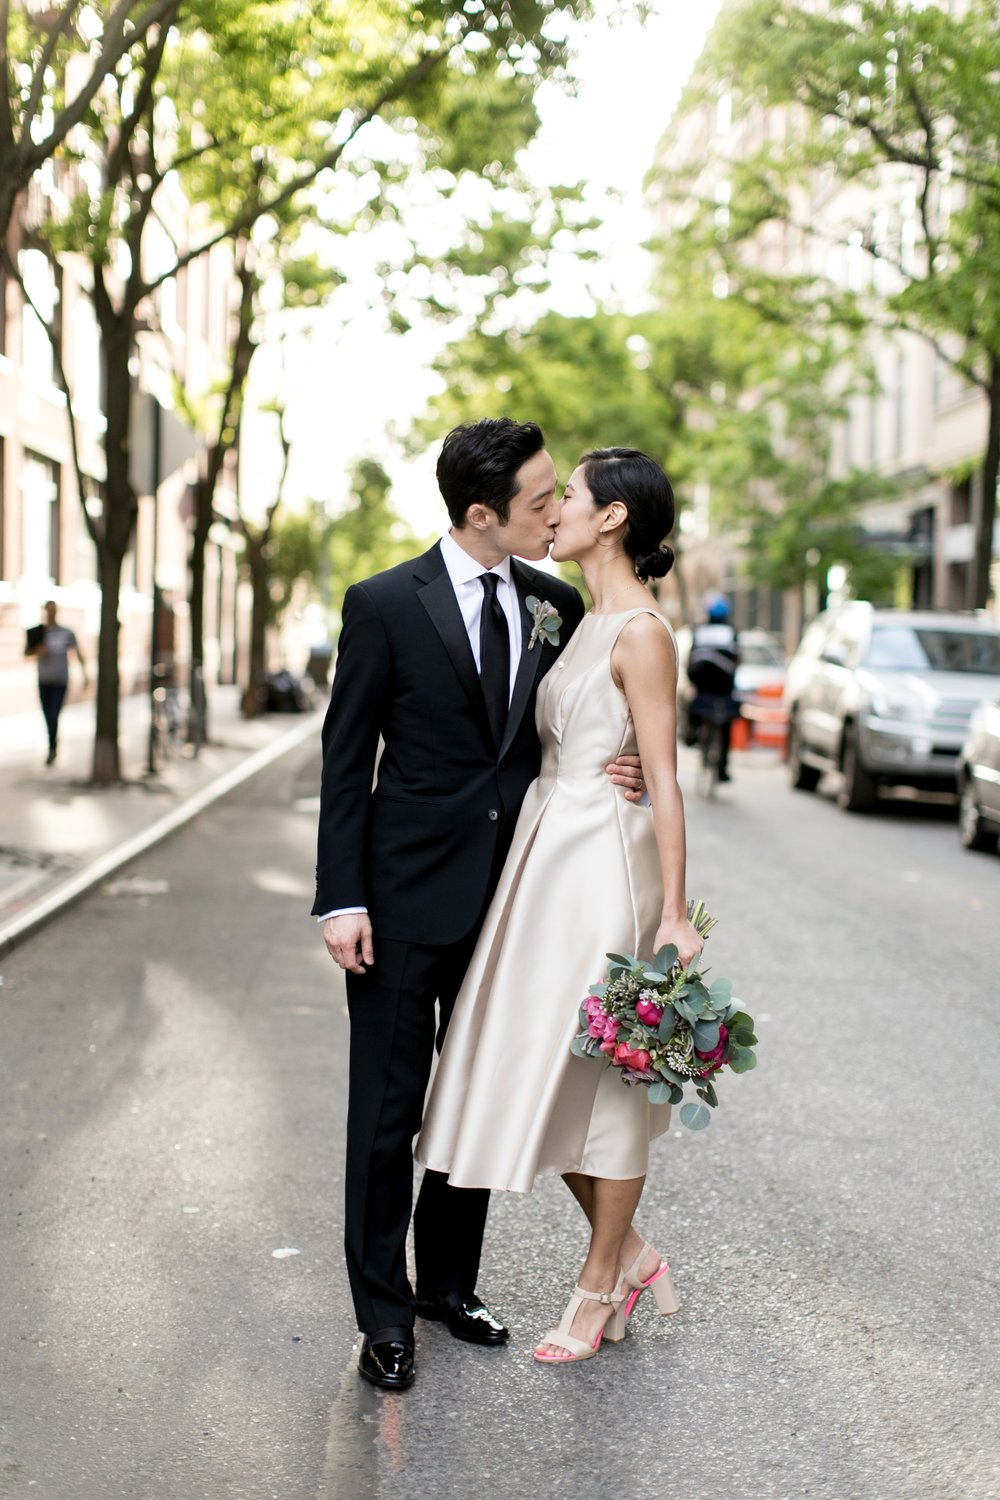 Leonard + Michelle Wedding kissing in West Village by Brookelyn Photography